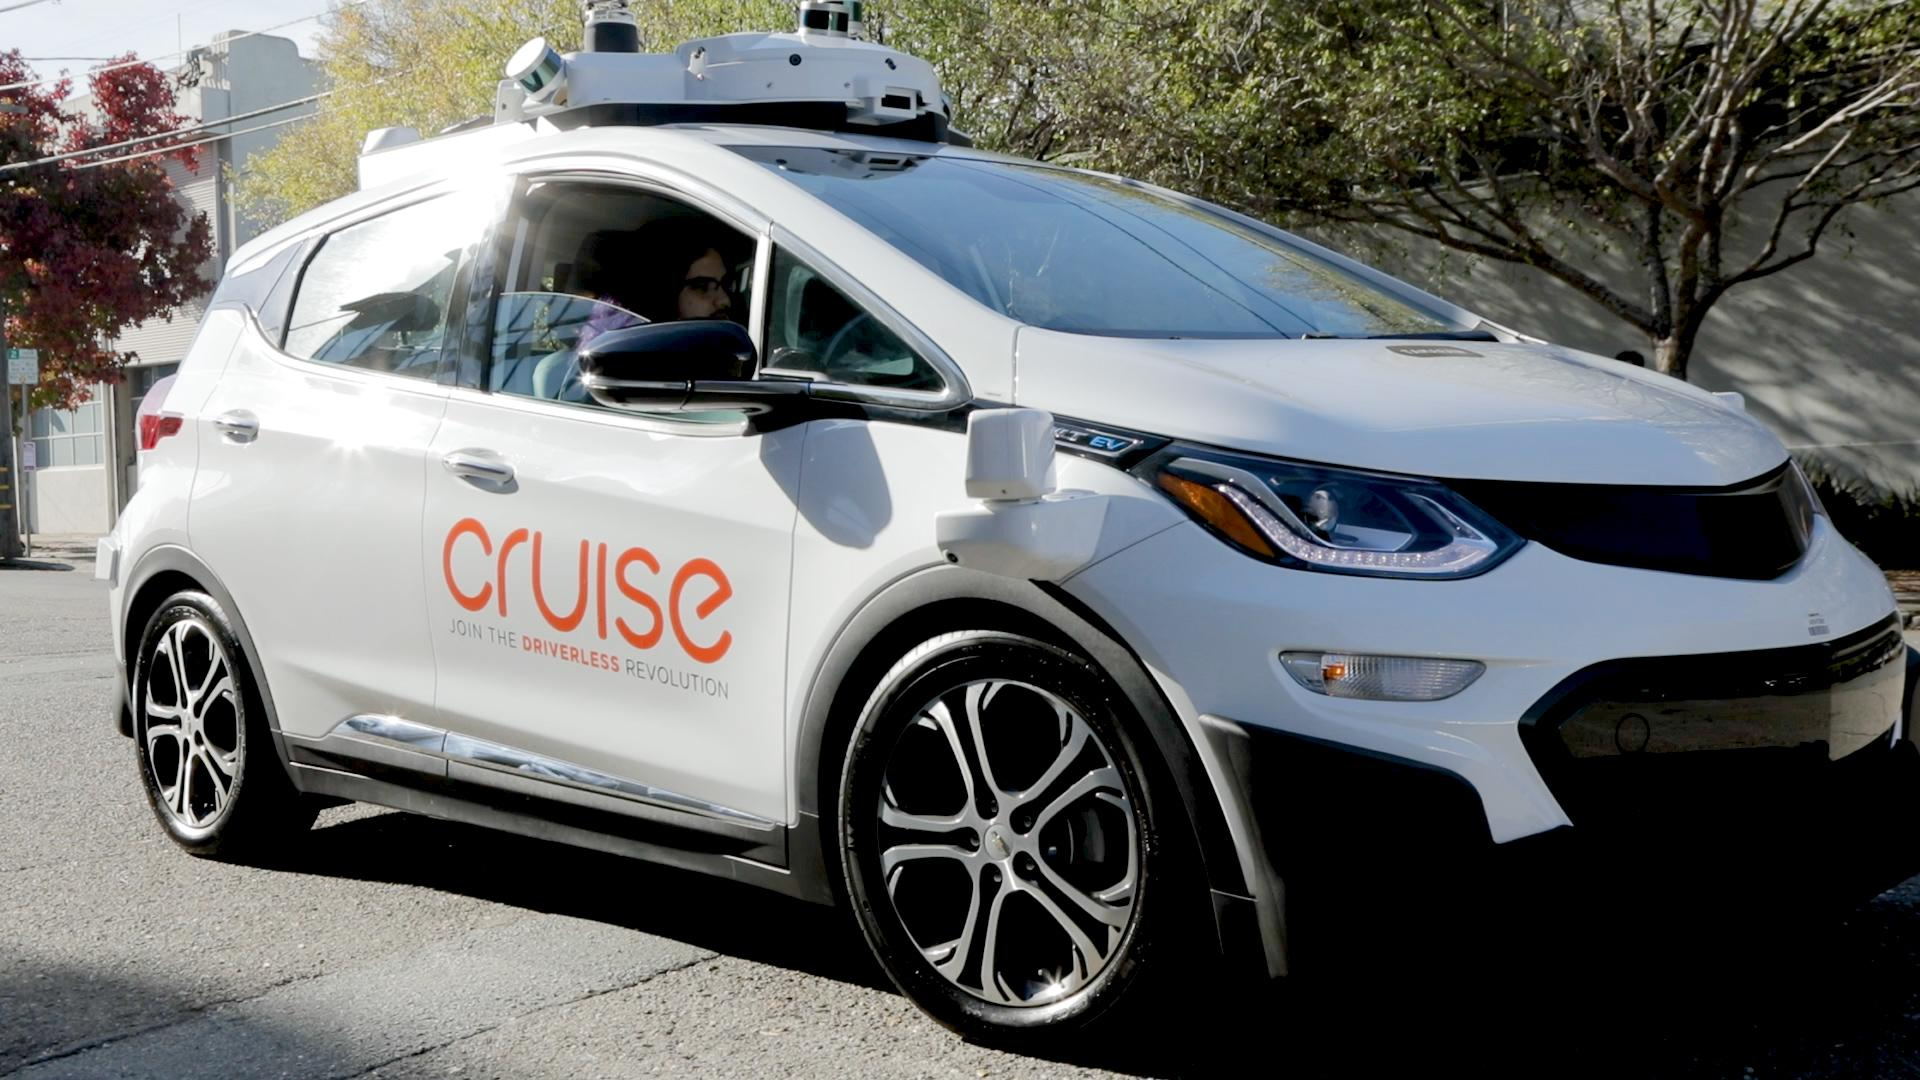 GM and Cruise detail their road to self-driving